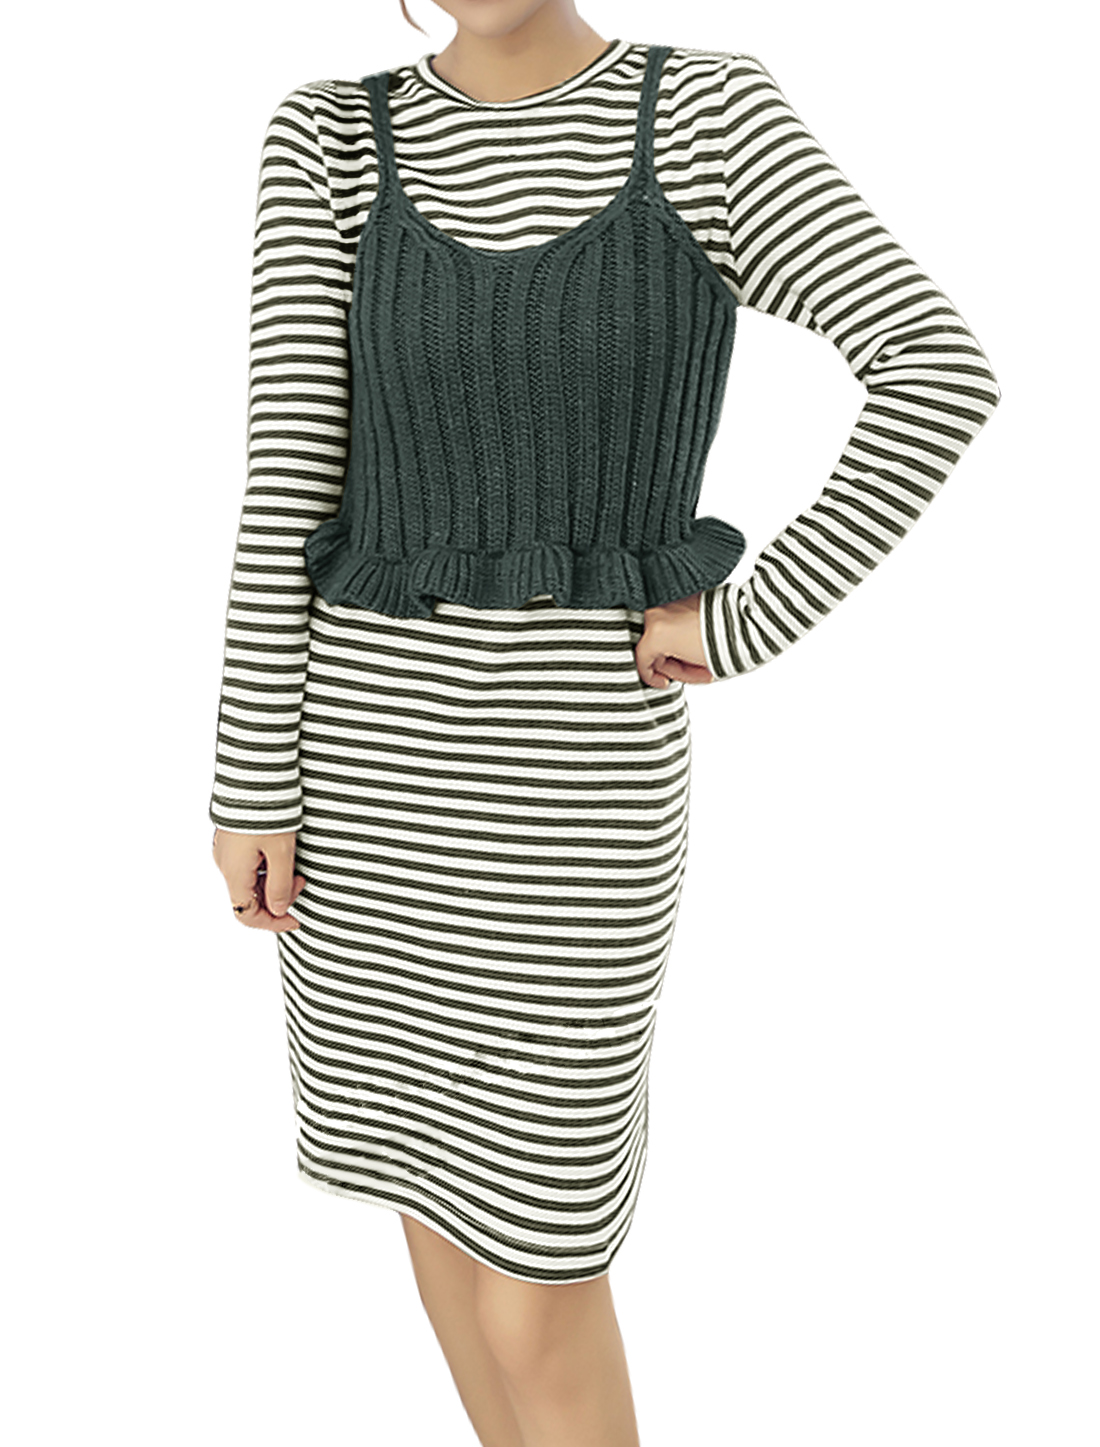 Women Flouncing Hem Crop Sweater Vest w Stripes Dress Sets Black Green XS